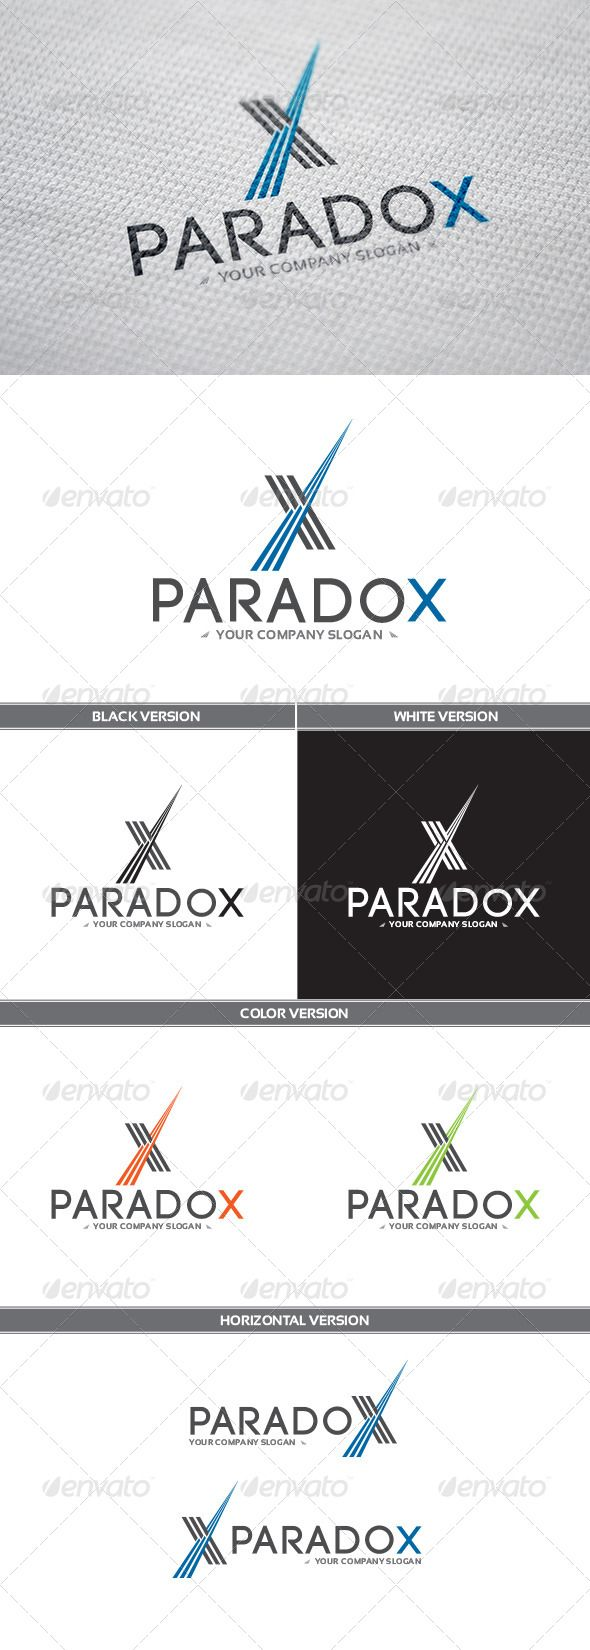 ParadoX Logo — Vector EPS #dynamics #letter x • Available here → https://graphicriver.net/item/paradox-logo/8321062?ref=pxcr